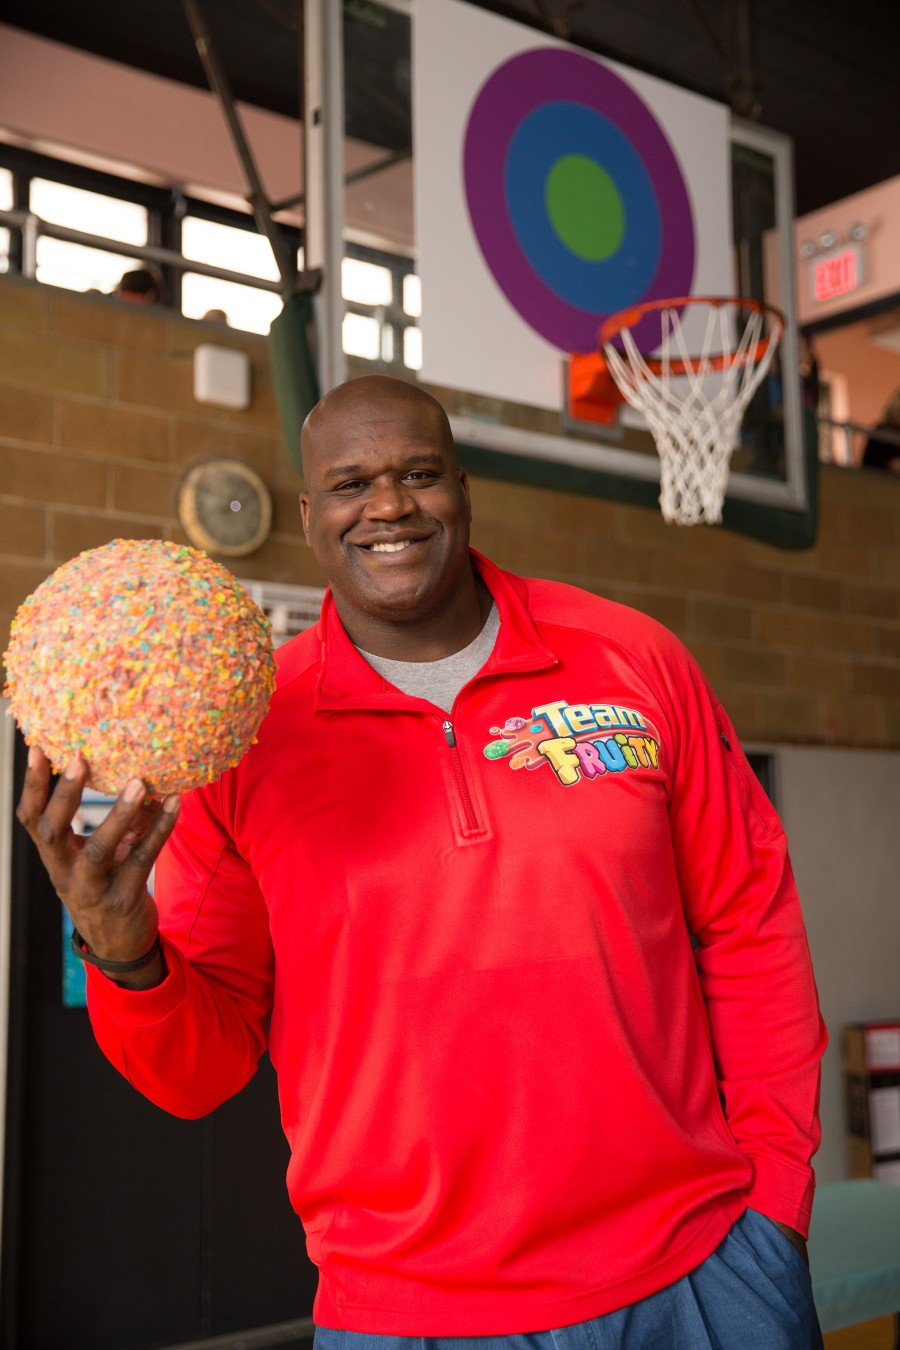 Shaquille O'Neal Fruity Pebbles